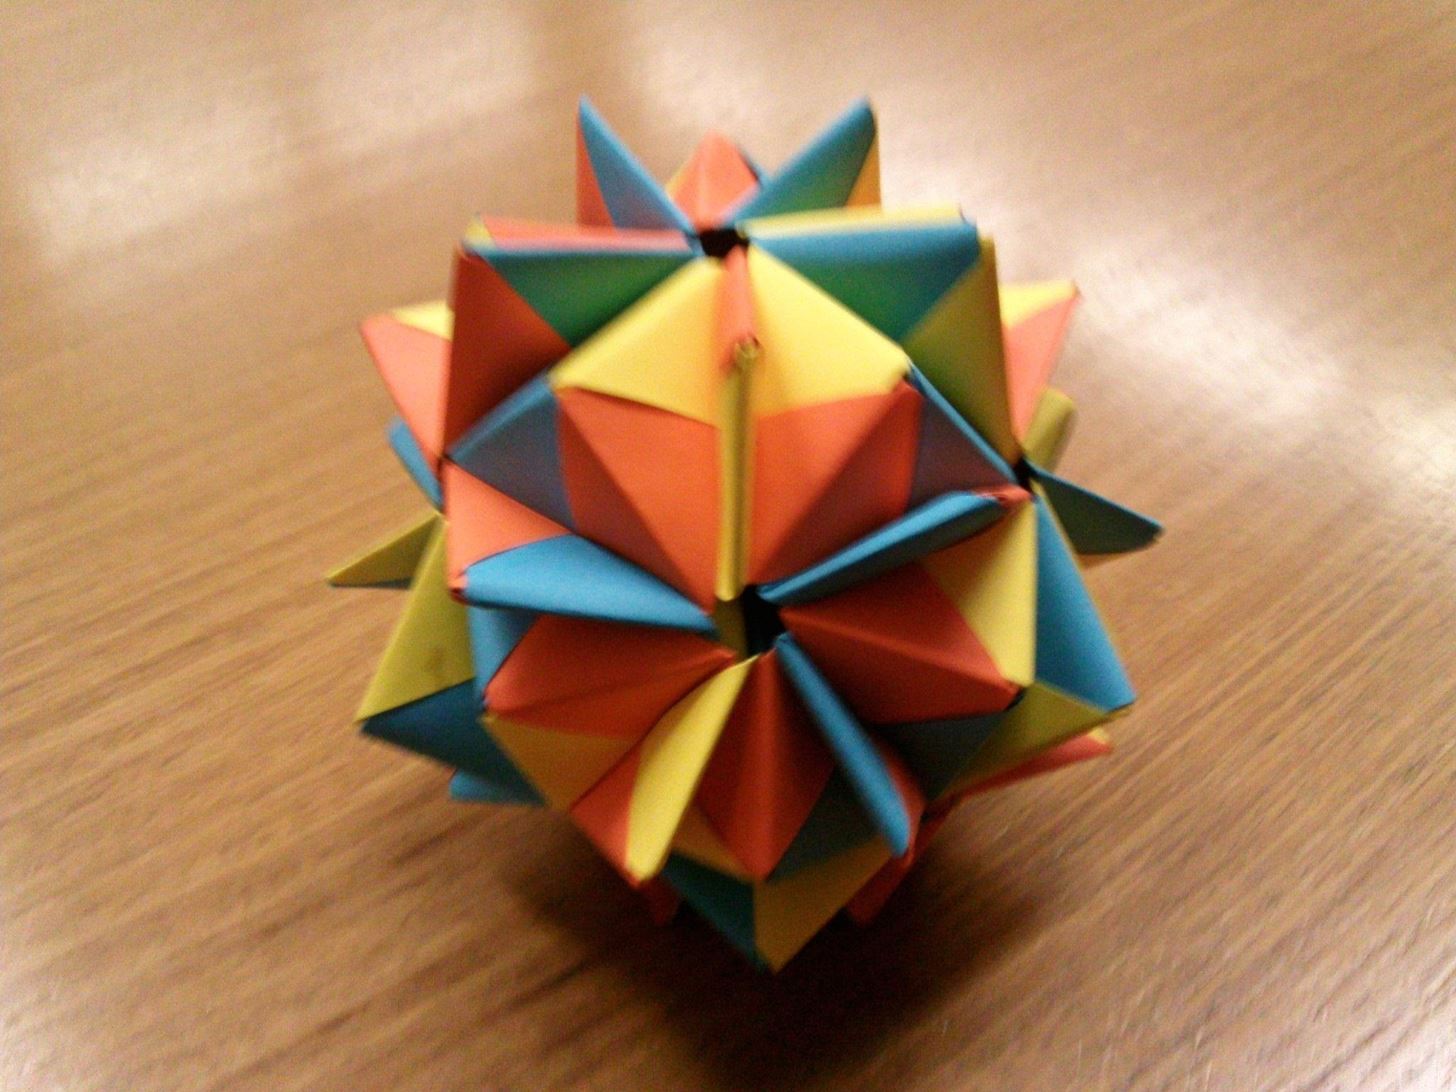 Modular Origami How To Make A Cube Octahedron Icosahedron From Advanced Diagrams Find Guide With Wiring Diagram Thanks Again